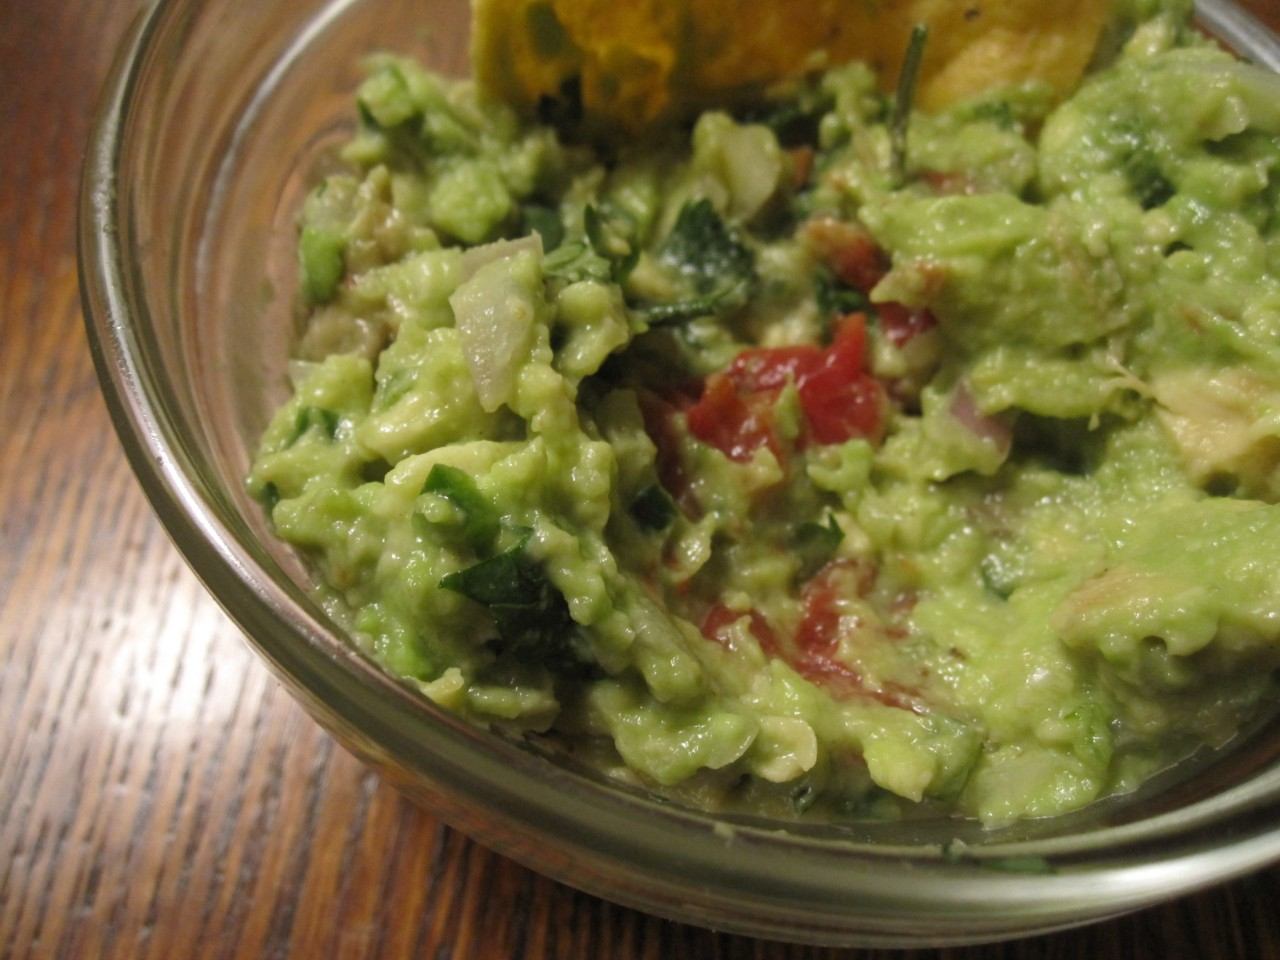 Cinco De Mayo guacamole recipe: How to make guacamole